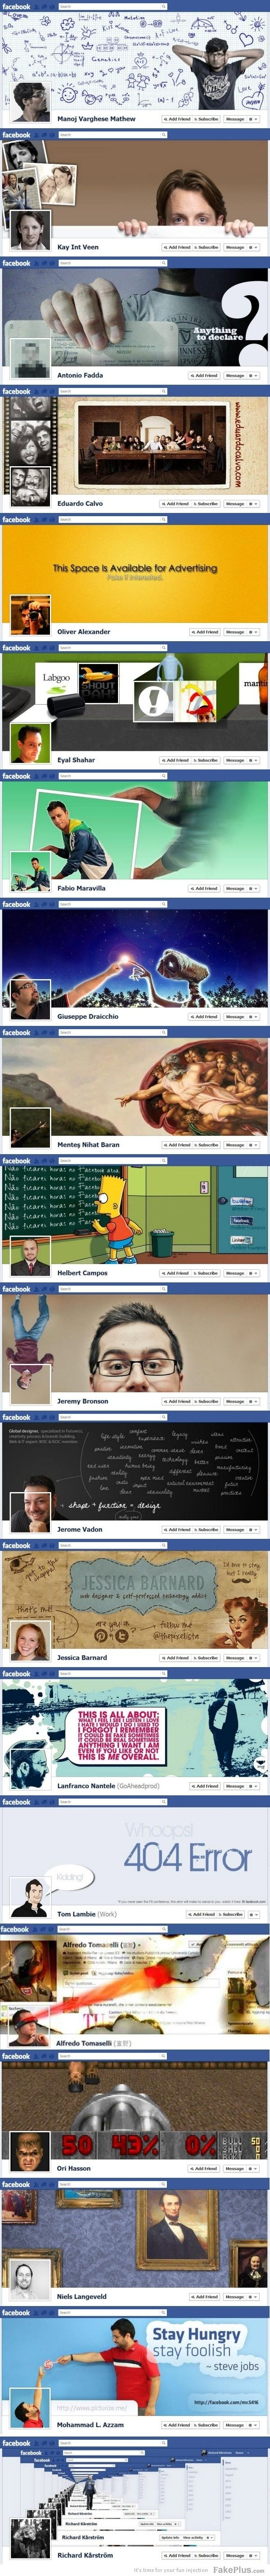 Facebook timeline covers - love these creative designs & how the profile pic is incorporated into the timeline cover.